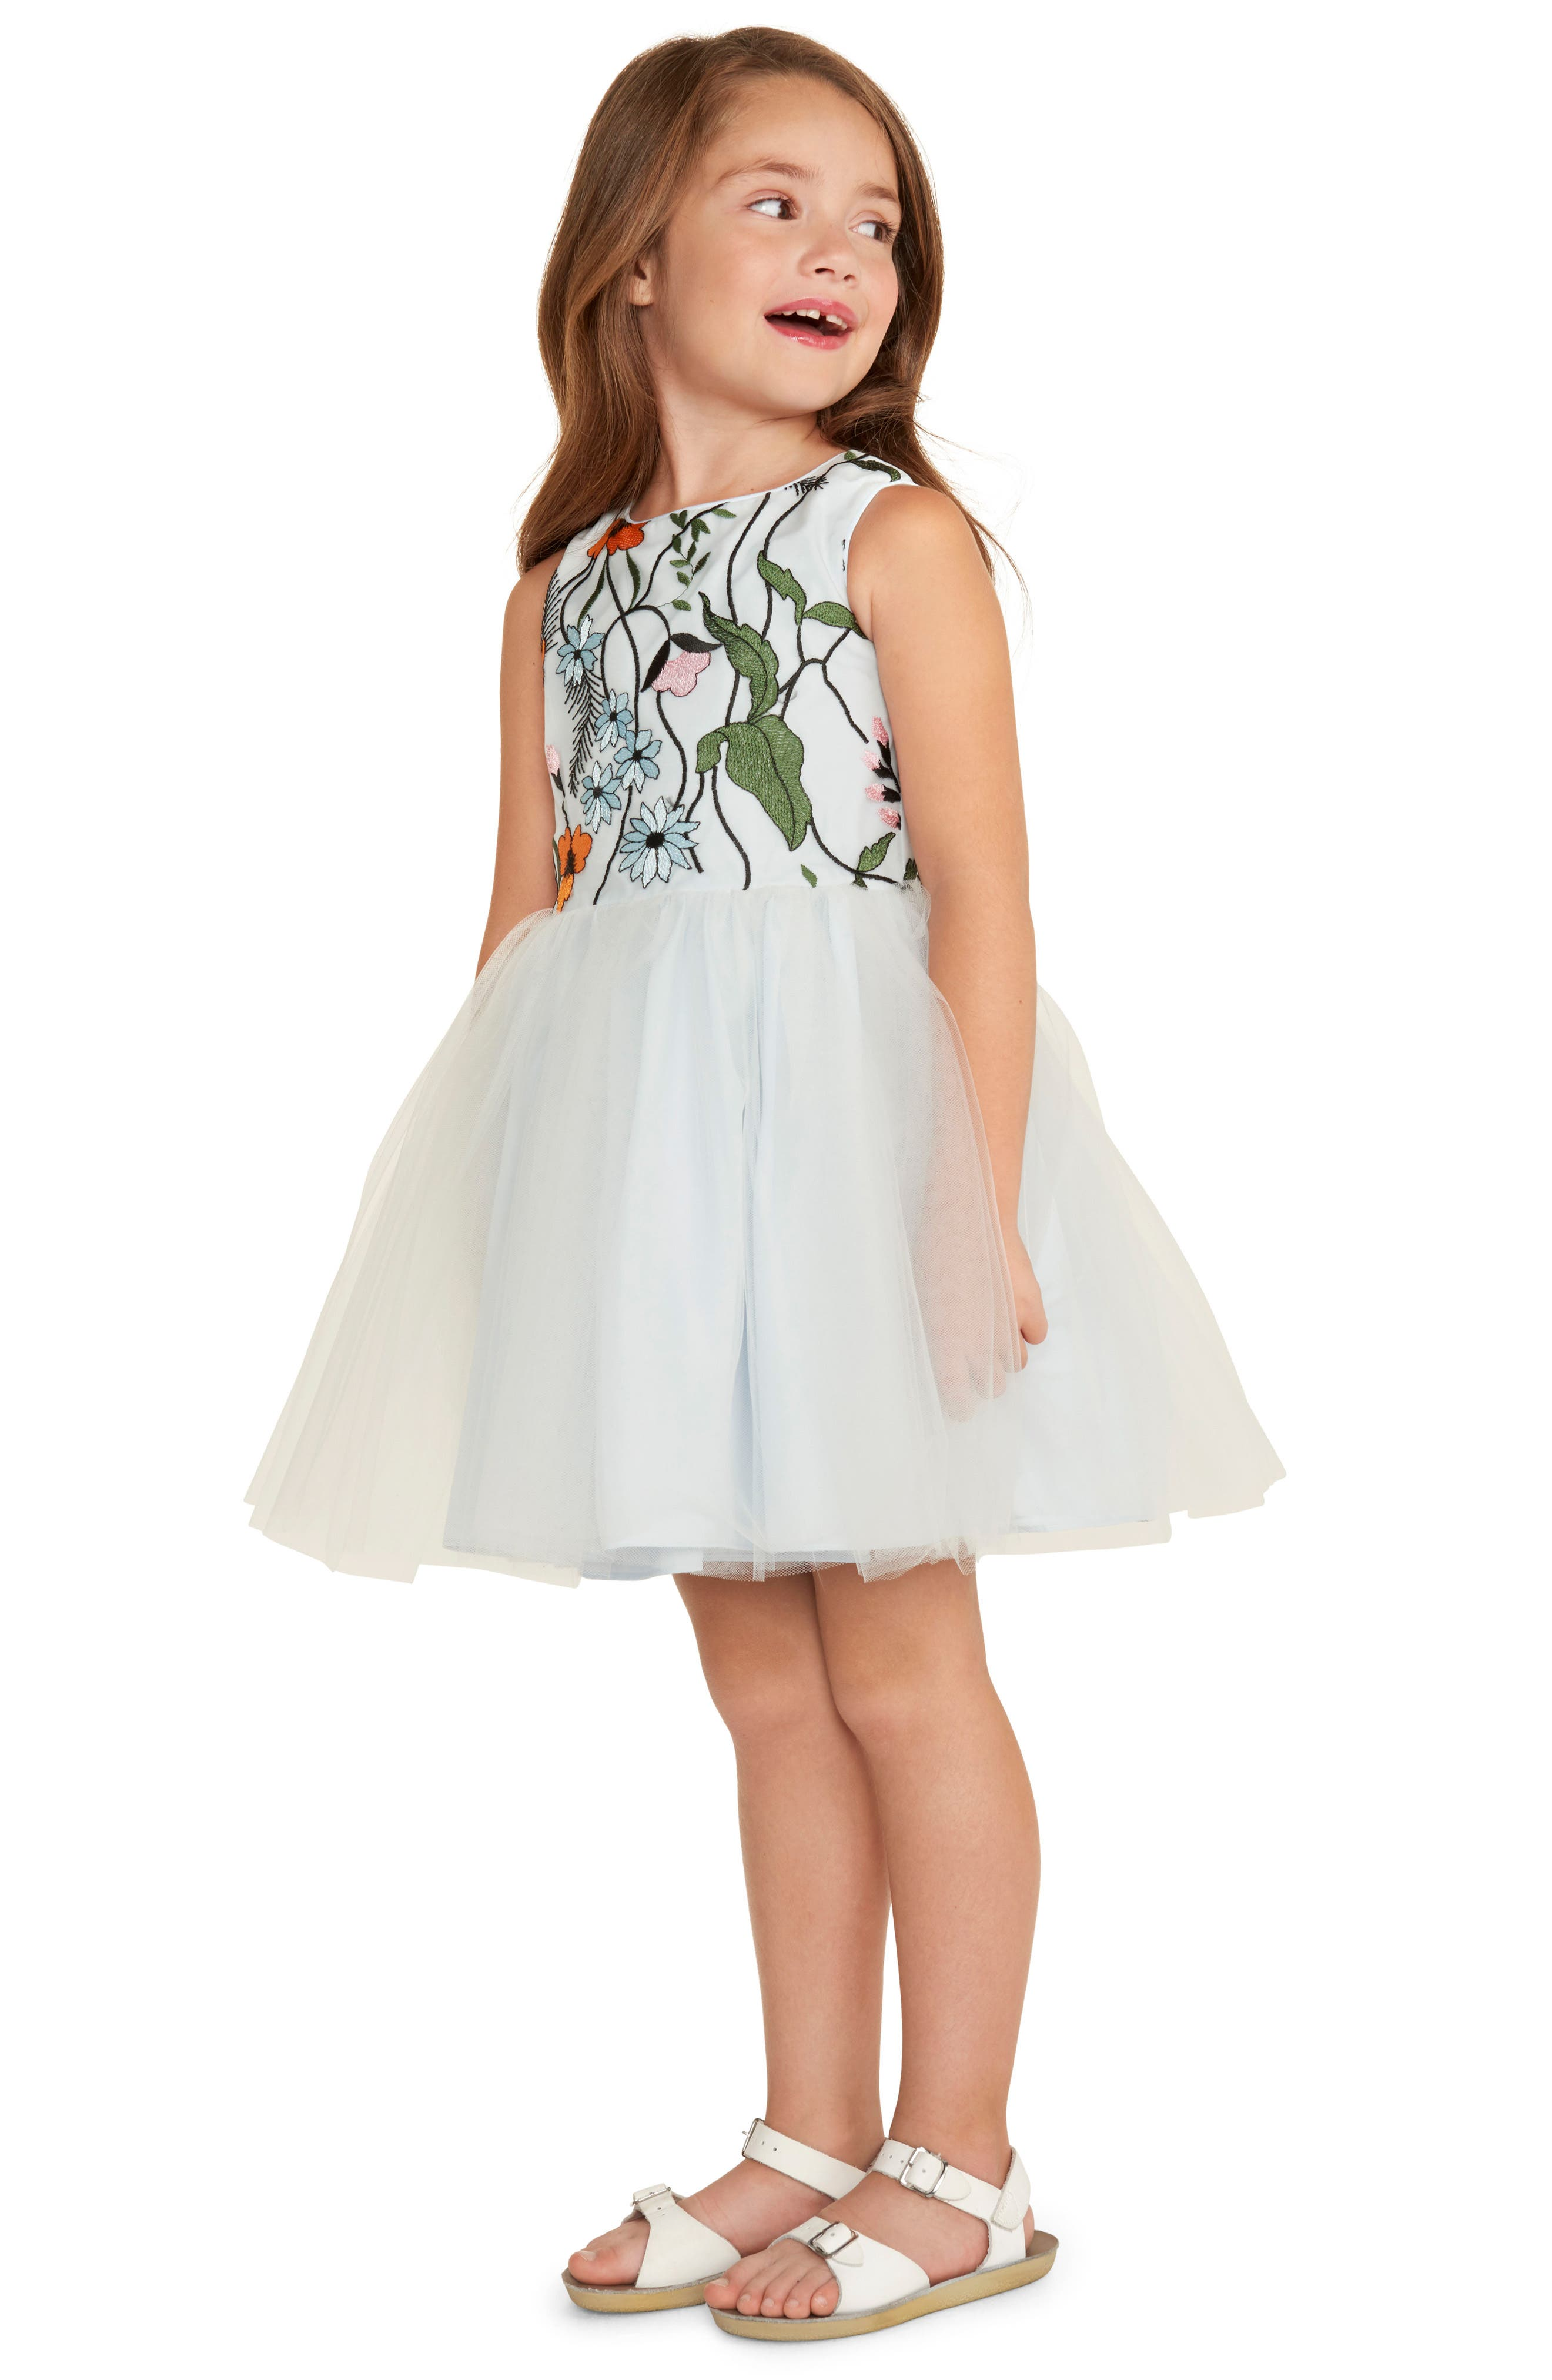 Embroidered Floral Tulle Dress,                             Alternate thumbnail 3, color,                             460